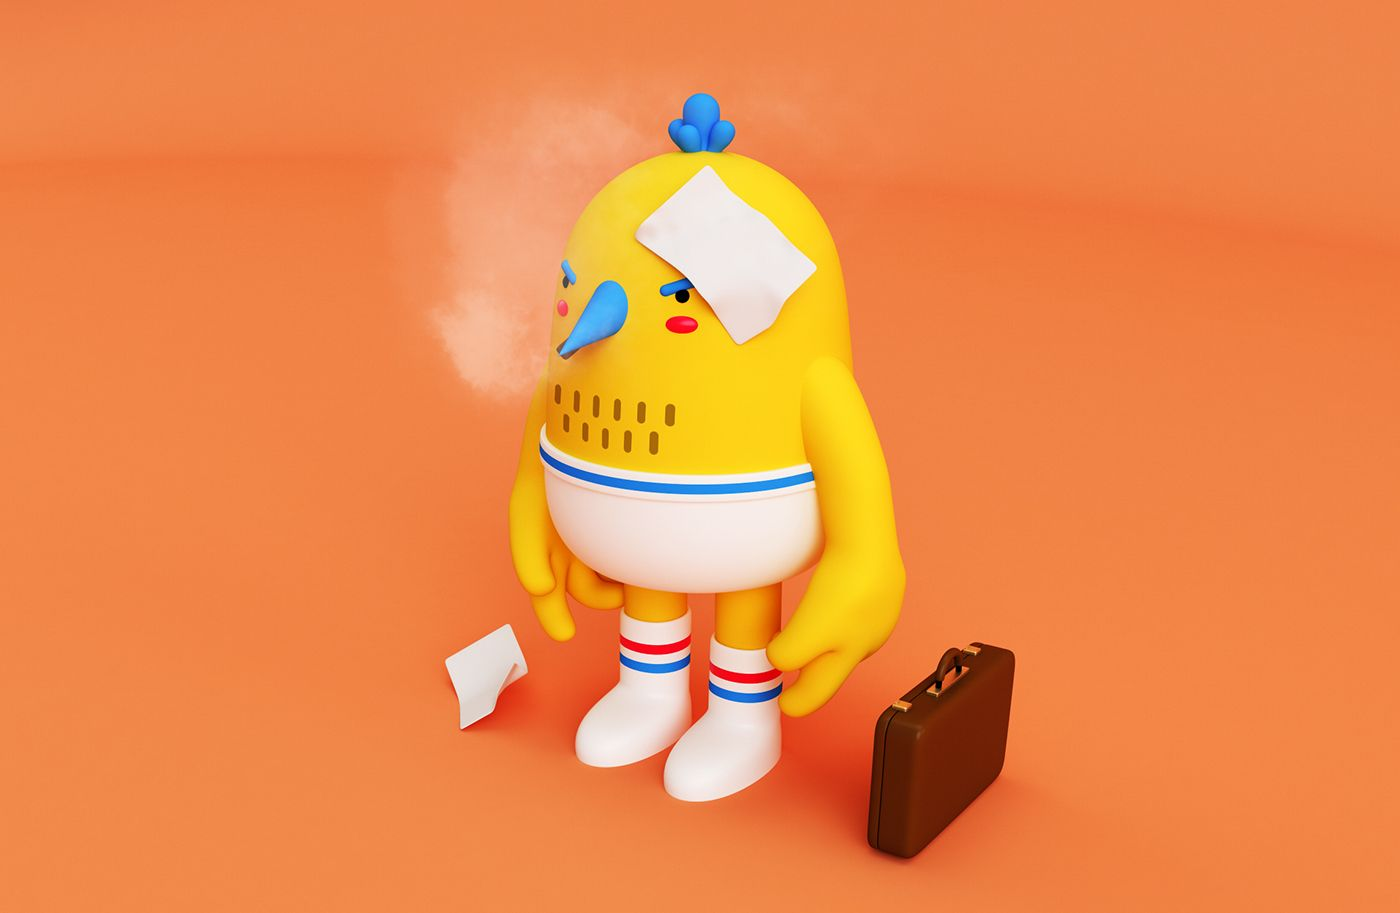 https://www.behance.net/gallery/58531667/3D-CHARACTERS